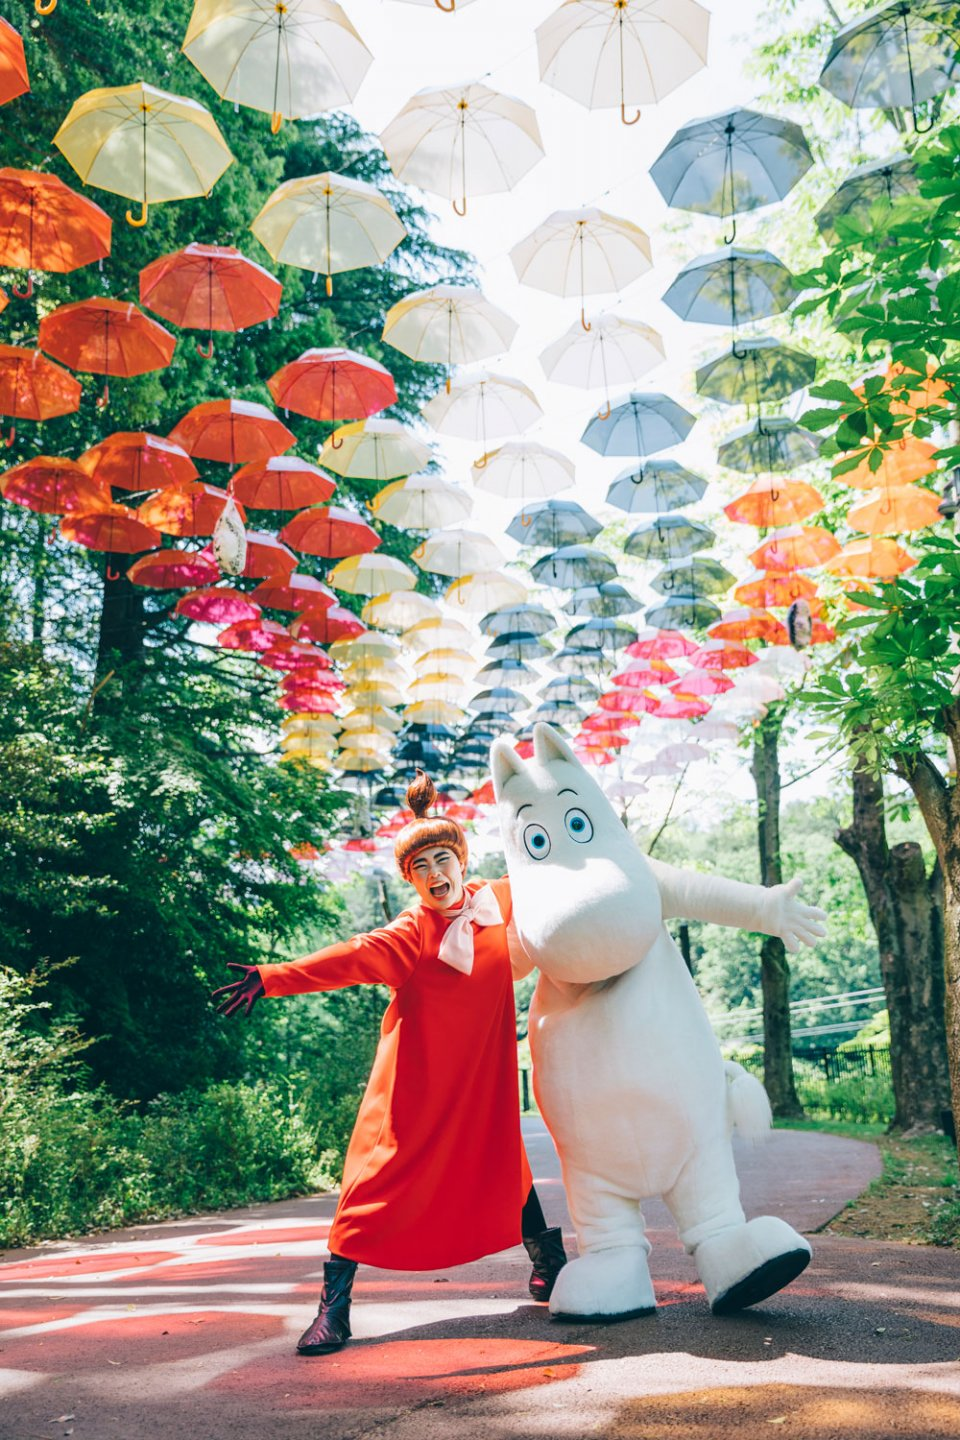 Moominvalley_Park_Umbrella_Sky_Installation_Hugging_Hanno_Japan_Hanno_Moomintroll_Little_My